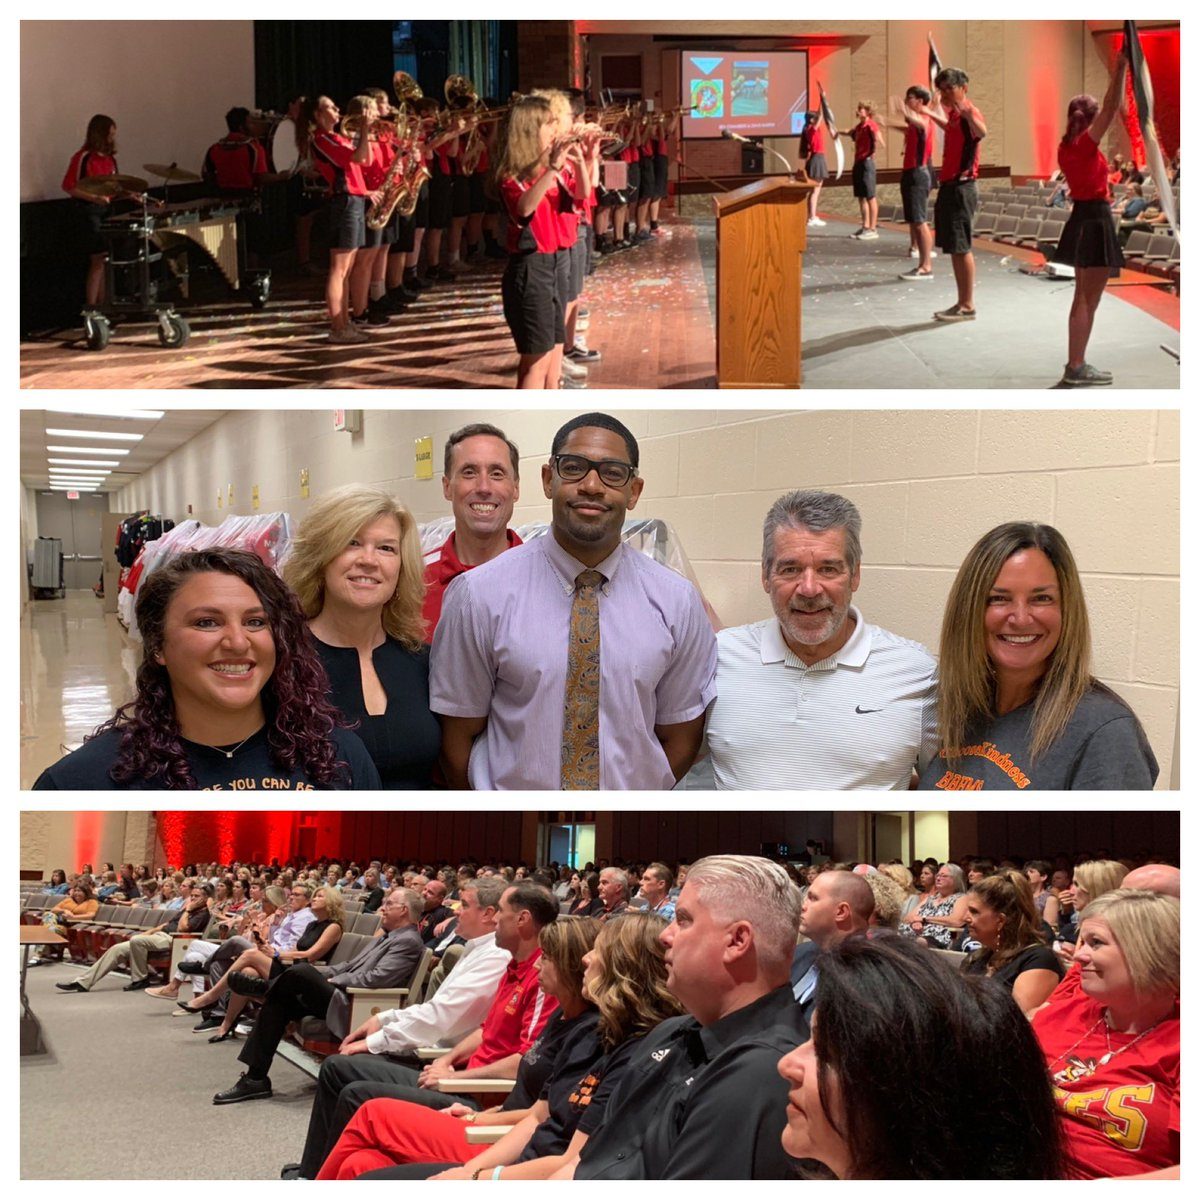 Great Convocation today! Thank you Tim Kight, for your words of wisdom! Bee your Best, Bee One Community, Bee the Future! #BBHeritage<br>http://pic.twitter.com/zubKFOlZvn